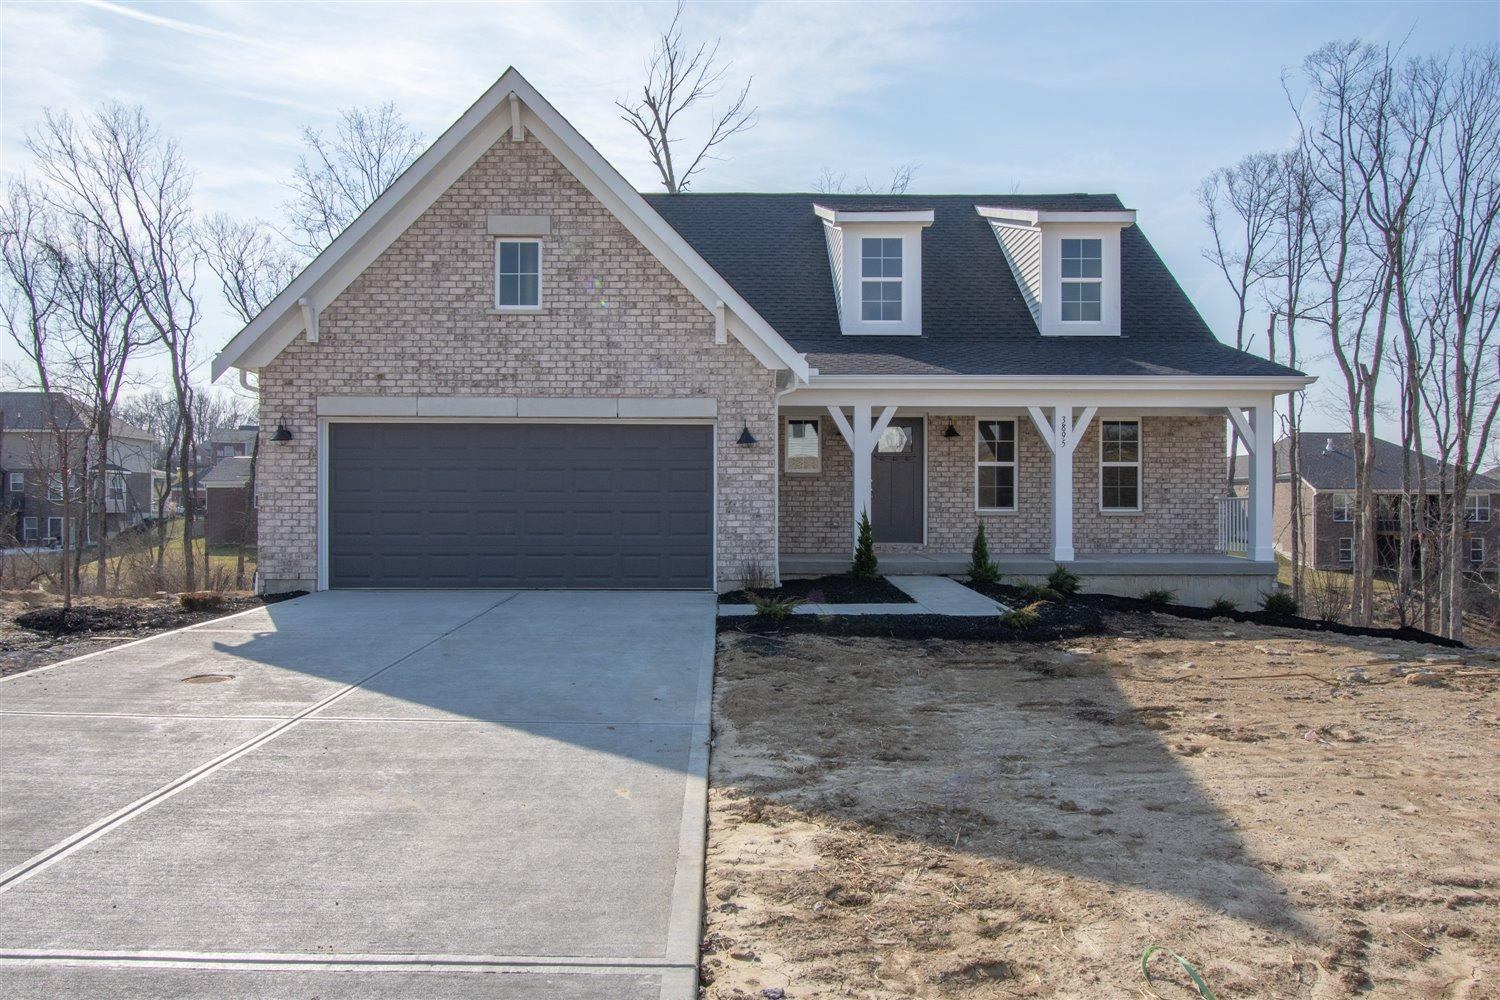 3895 Haley Ln Miami Twp. (West), OH